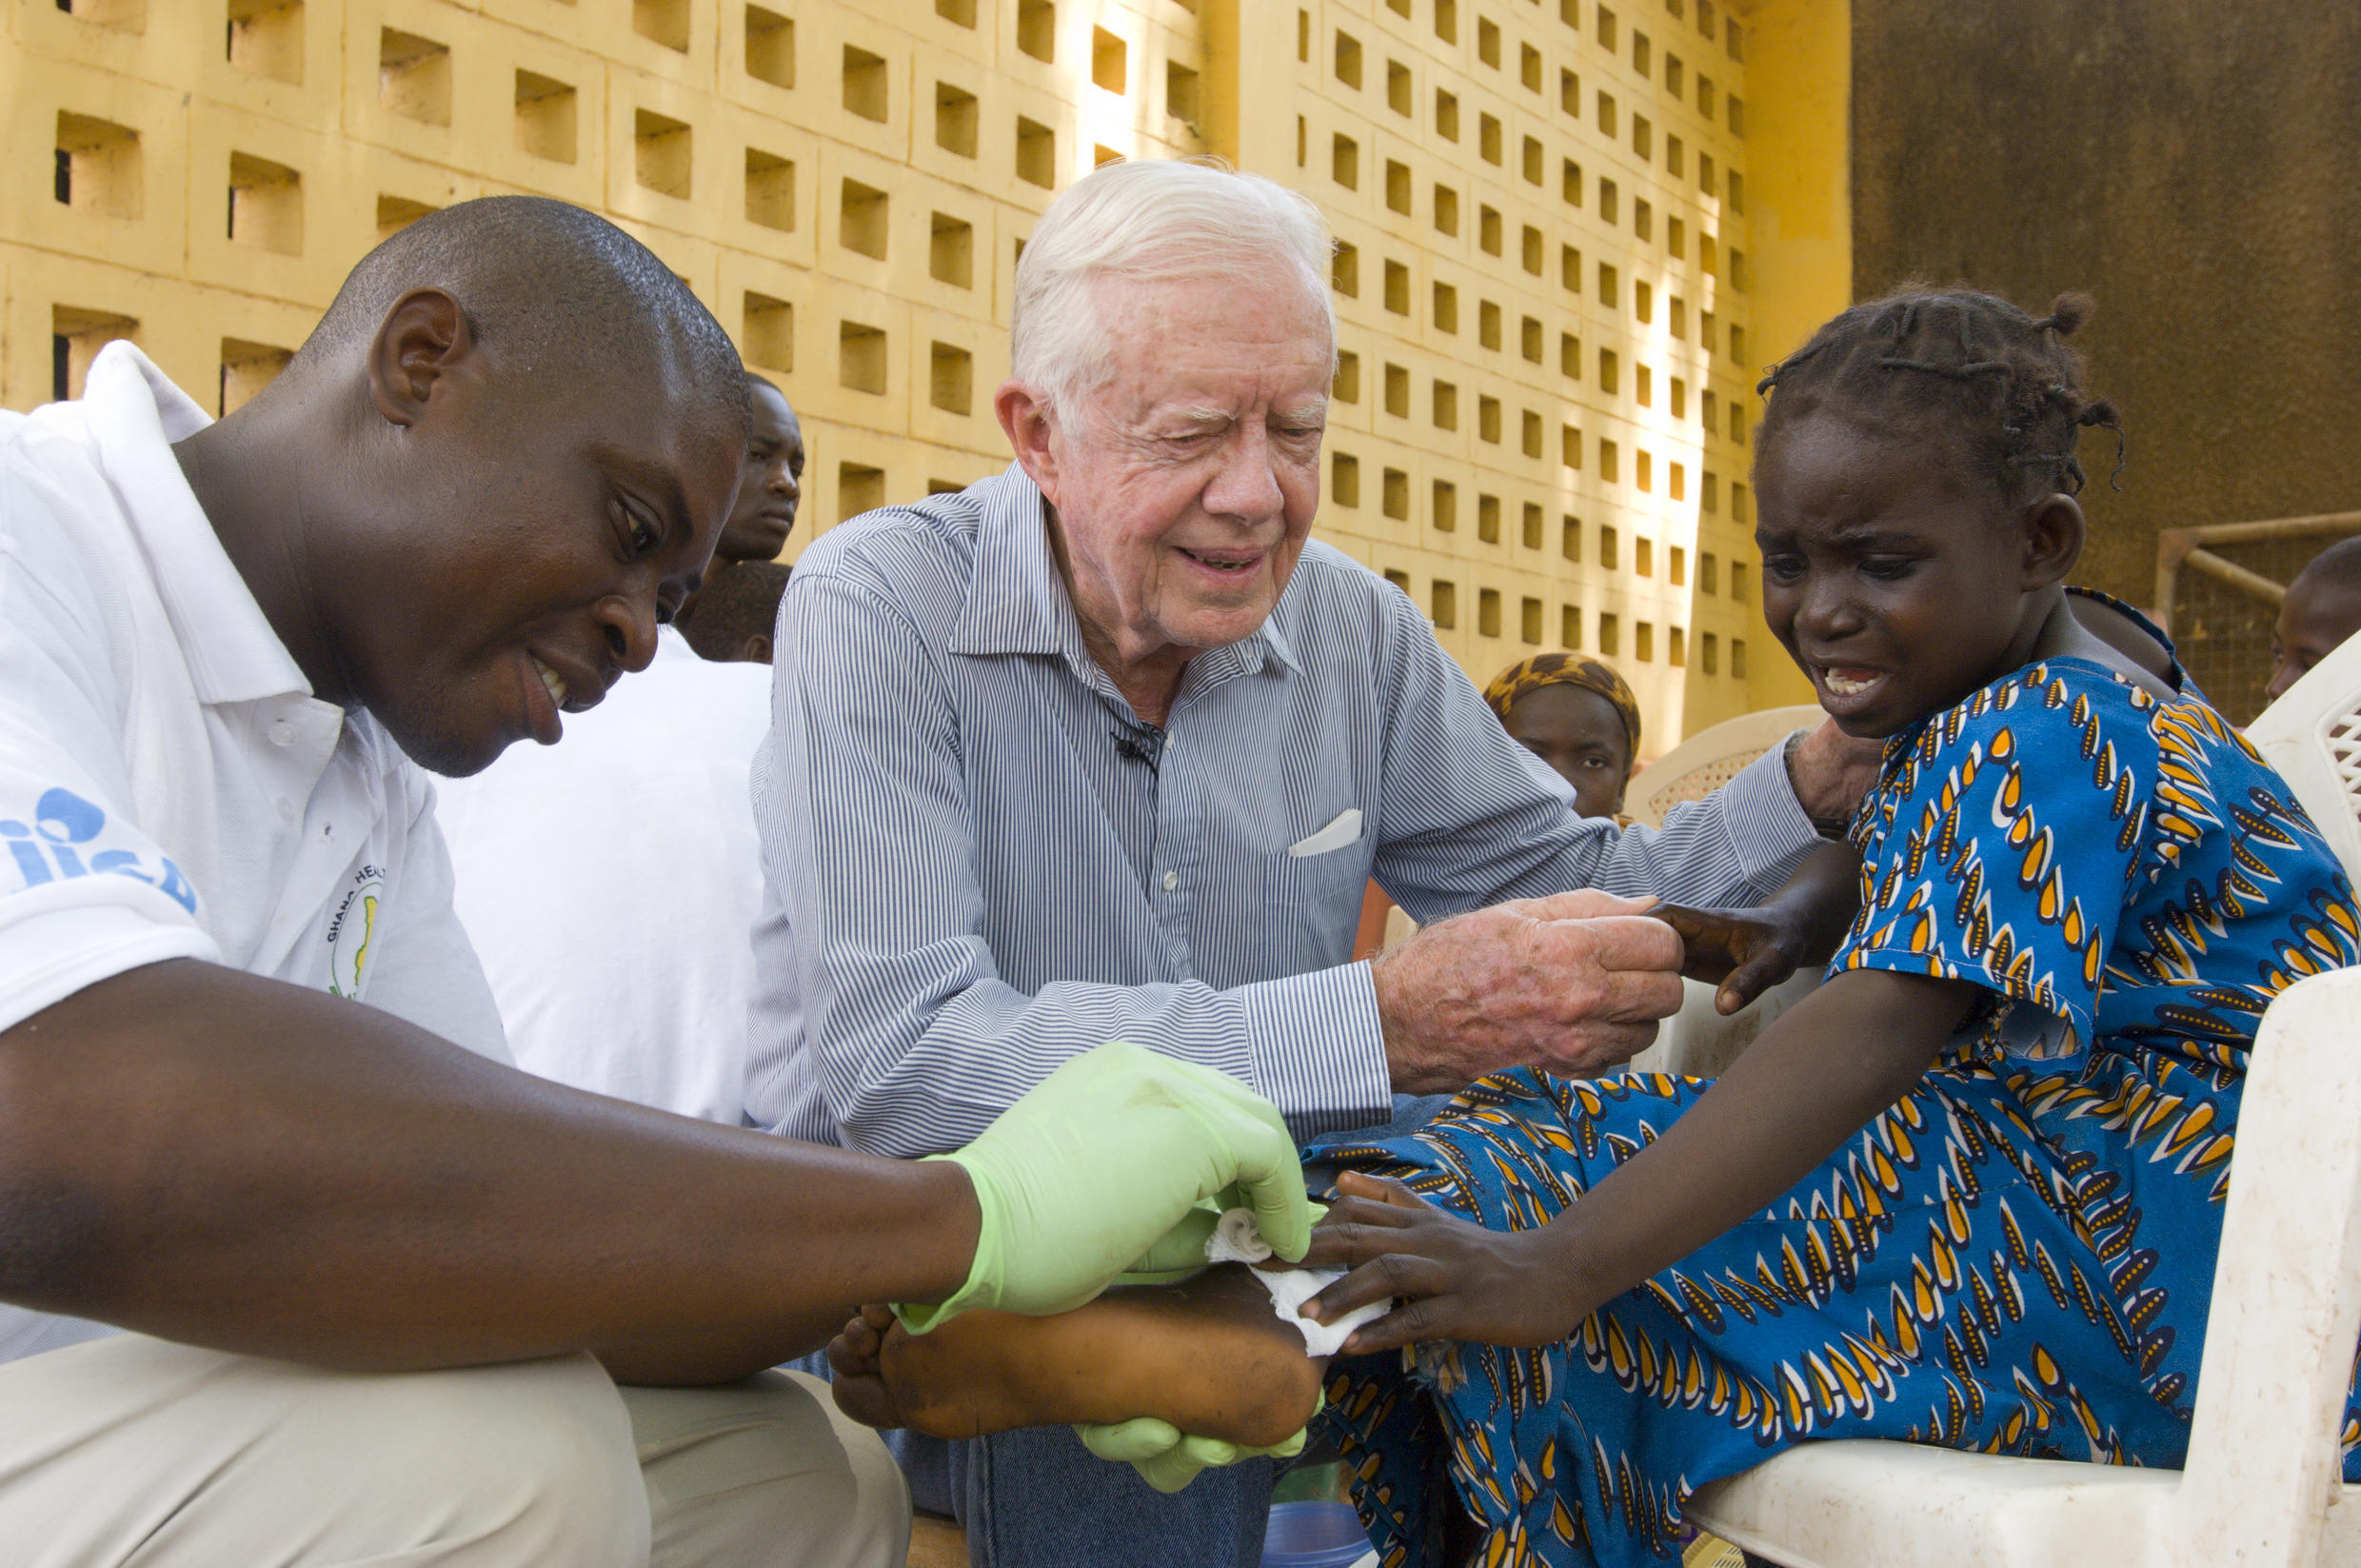 Former US President Jimmy Carter tries to comfort 6-year-old Ruhama Issah at Savelugu (Ghana) Hospital.